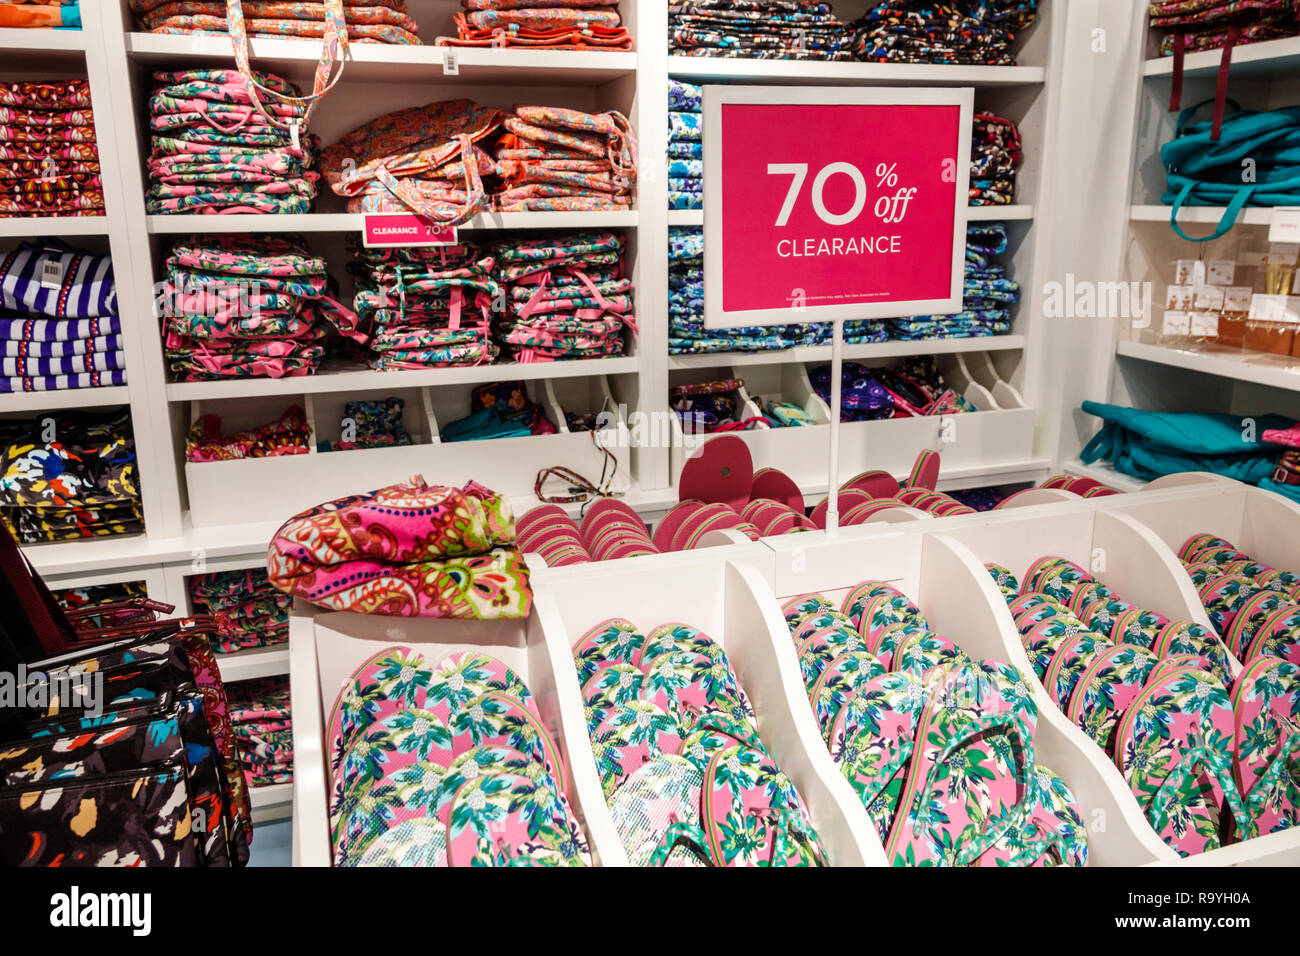 Fort Ft. Lauderdale Florida Sunrise Sawgrass Mills Mall shopping Vera Bradley inside quilted cotton display sale promotion 70% clearance bags flip flo - Stock Image